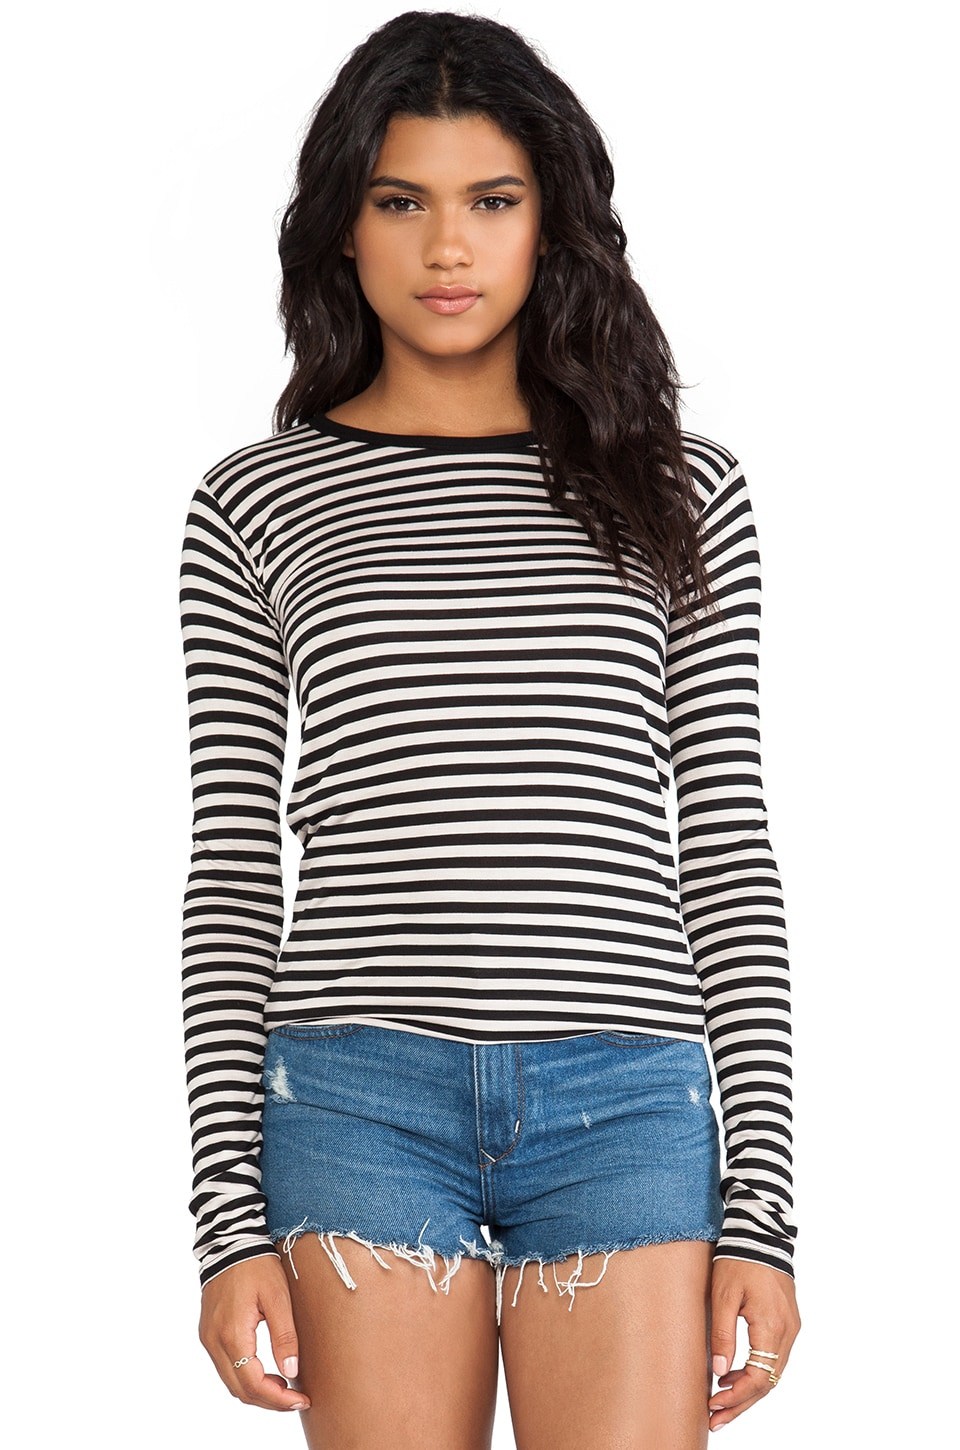 The Lady & the Sailor Boxy Long Sleeve in Nude Stripe